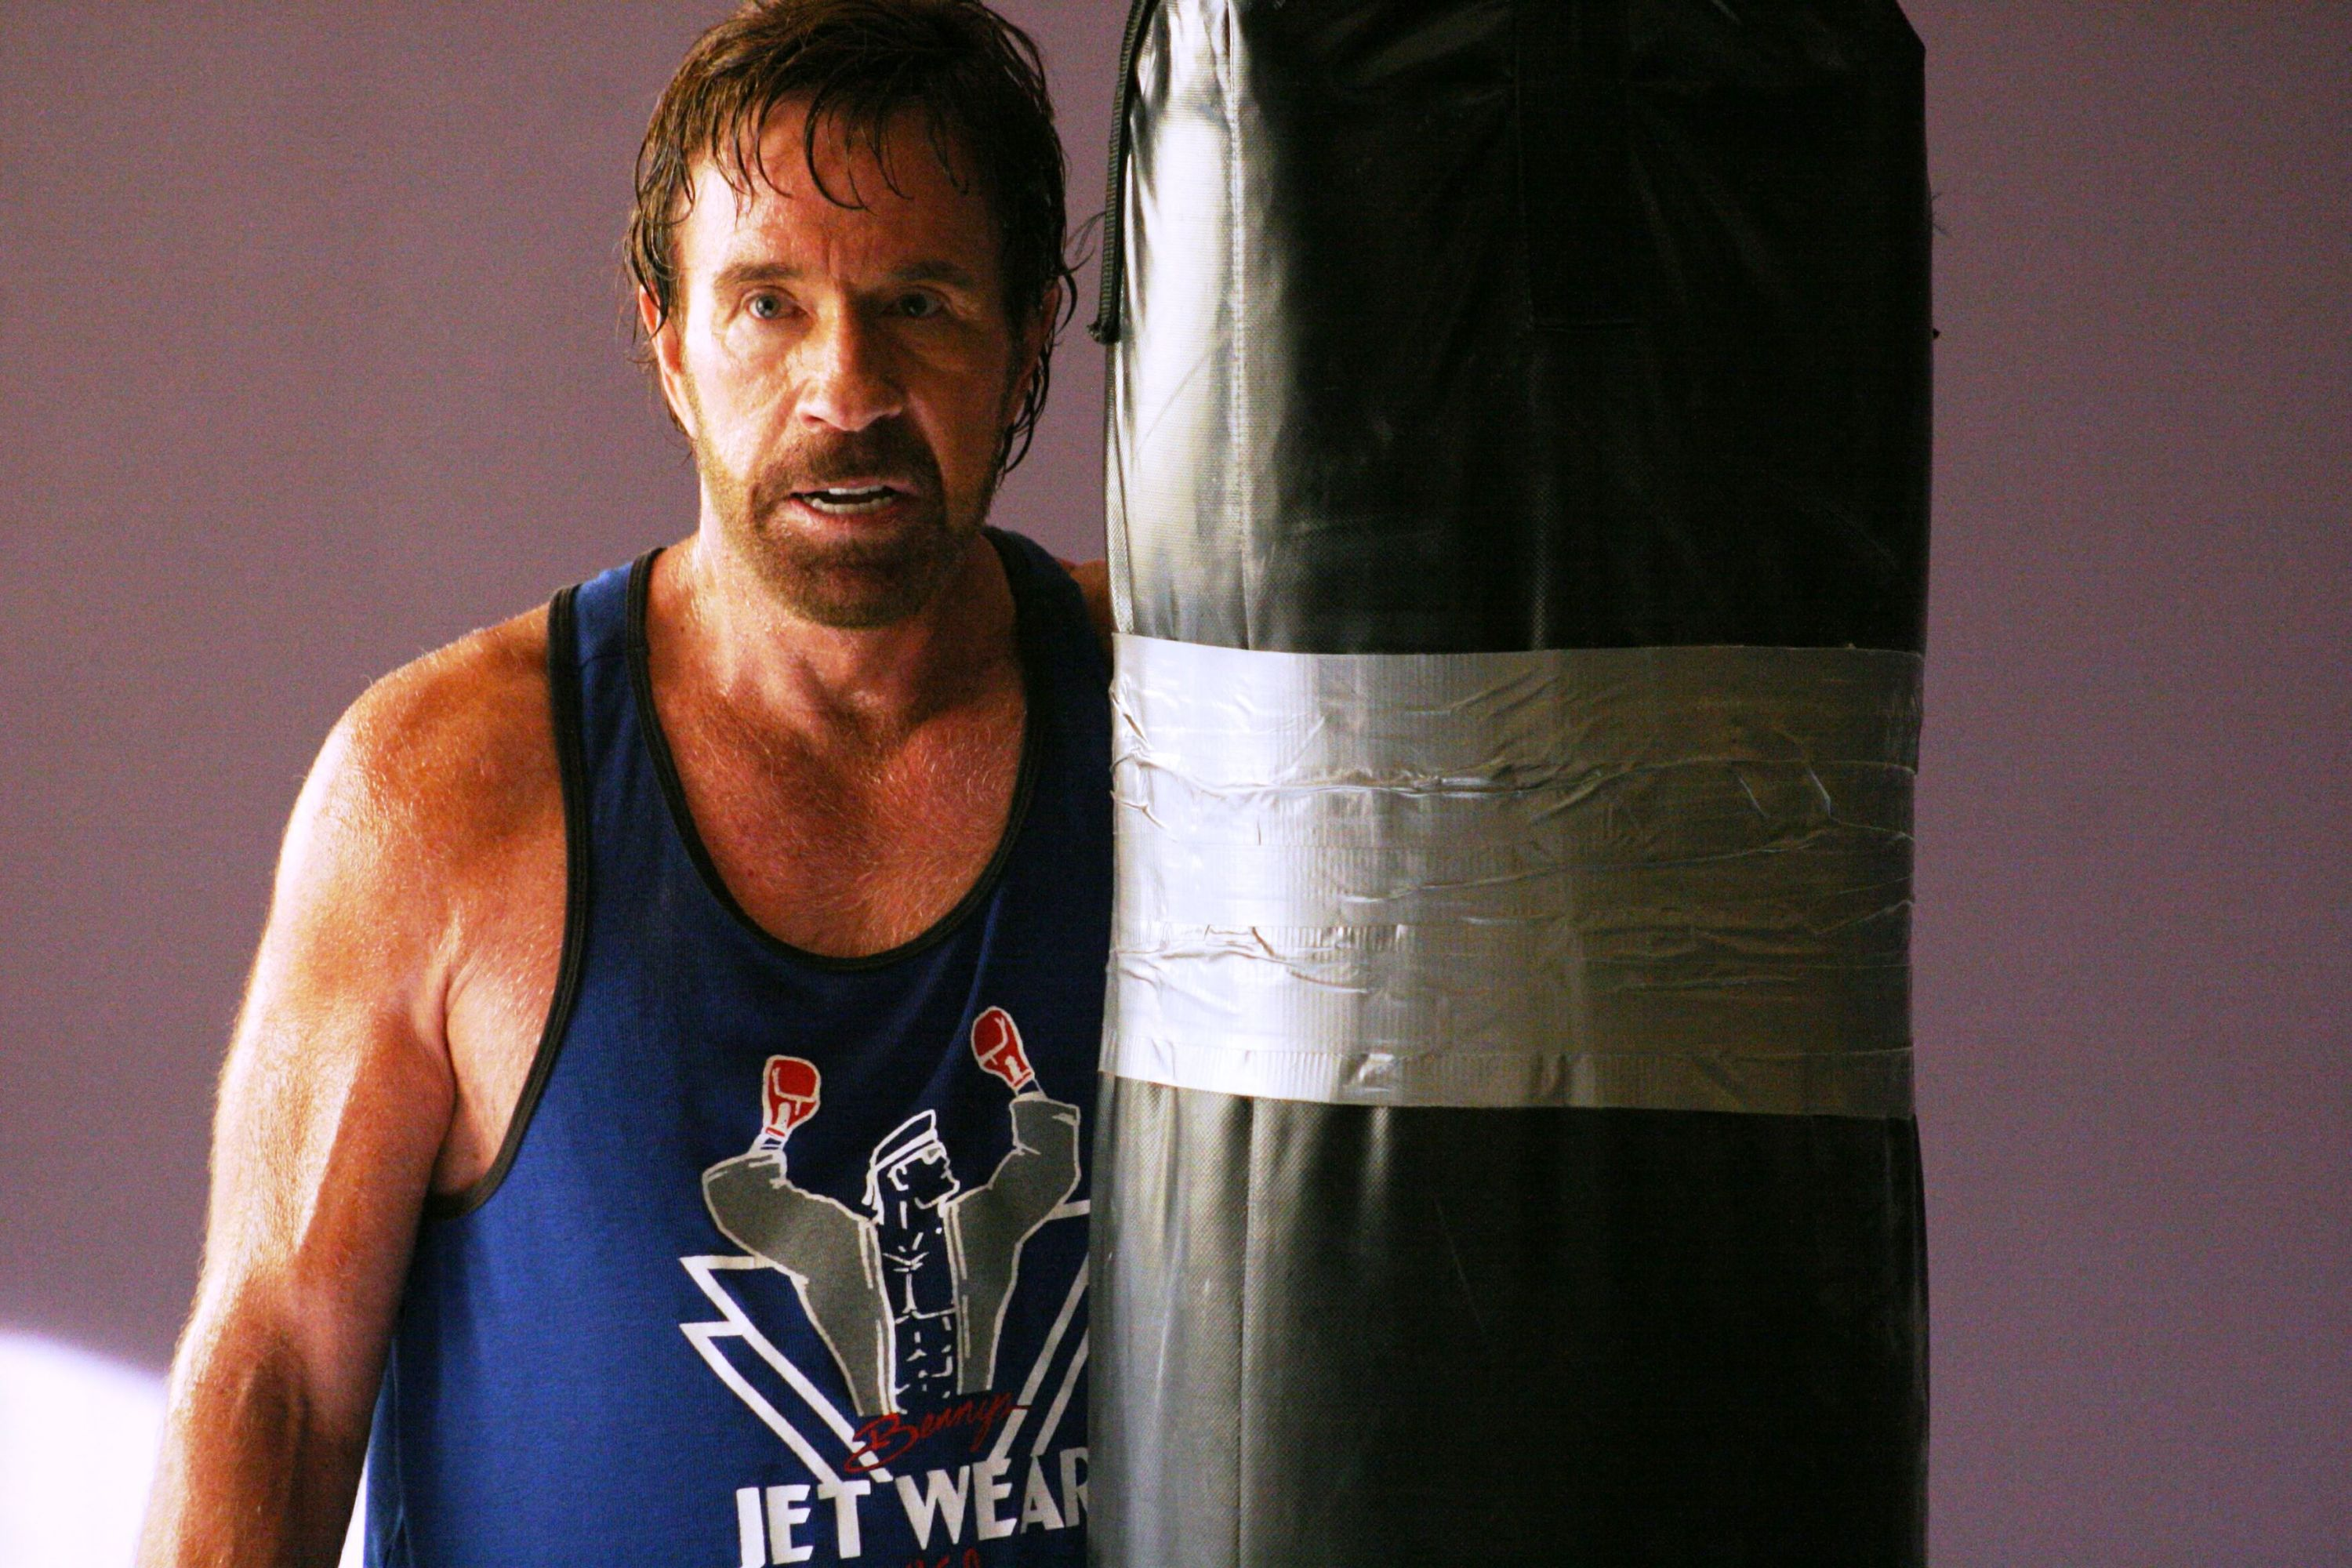 Pictures Of Chuck Norris